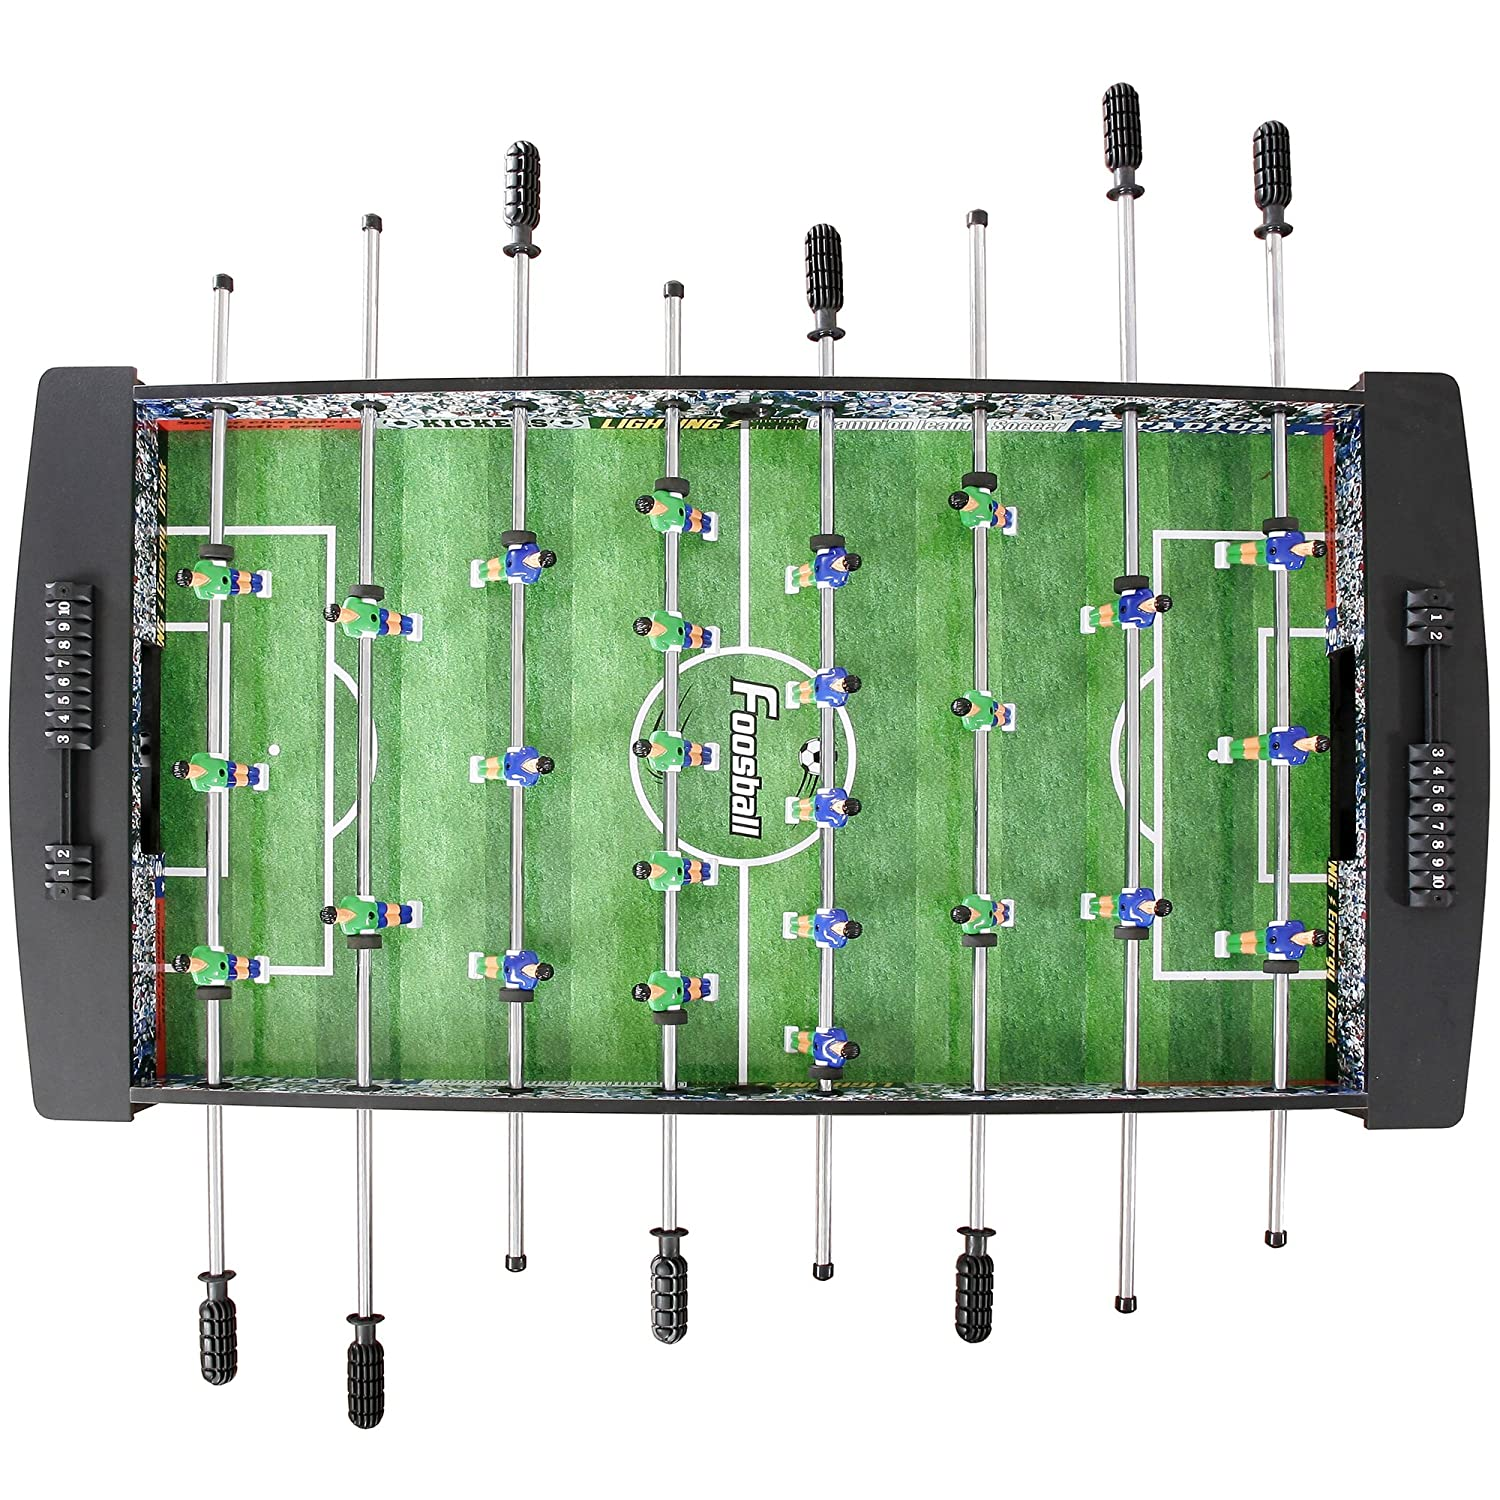 Amazon.com : Hathaway Playoff 4u0027 Foosball Table, Soccer Game For Kids And  Adults With Ergonomic Handles, Analog Scoring And Leg Levelers : Foosball  Tables ...